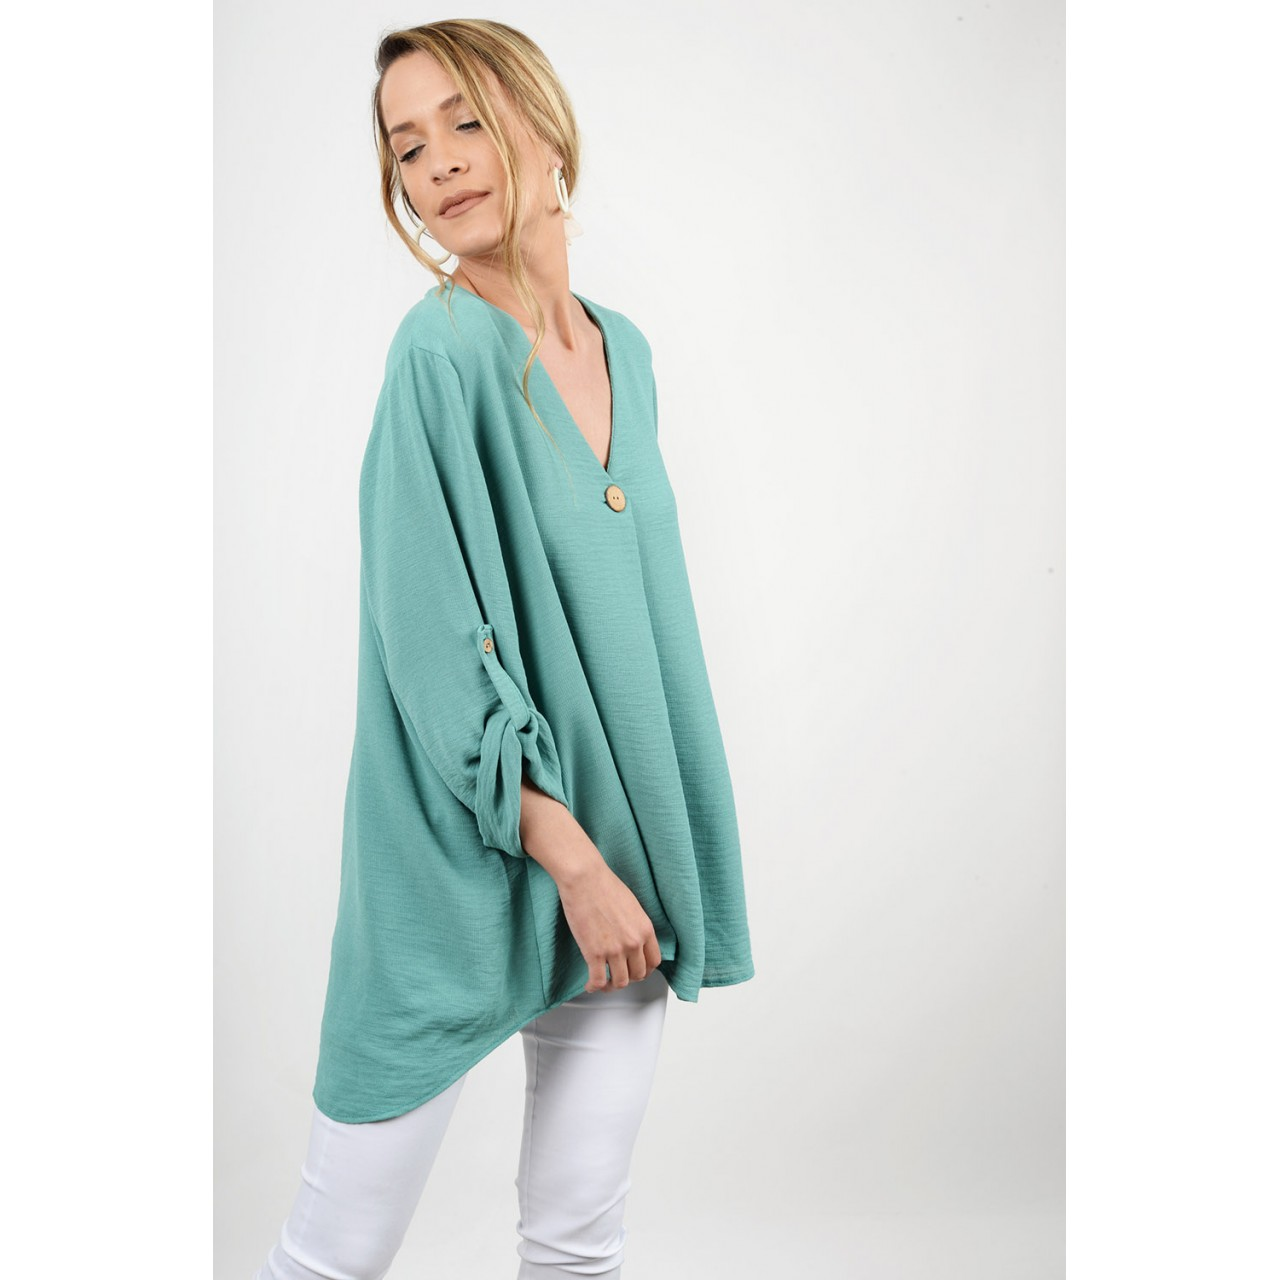 Oversized shirt with buttons